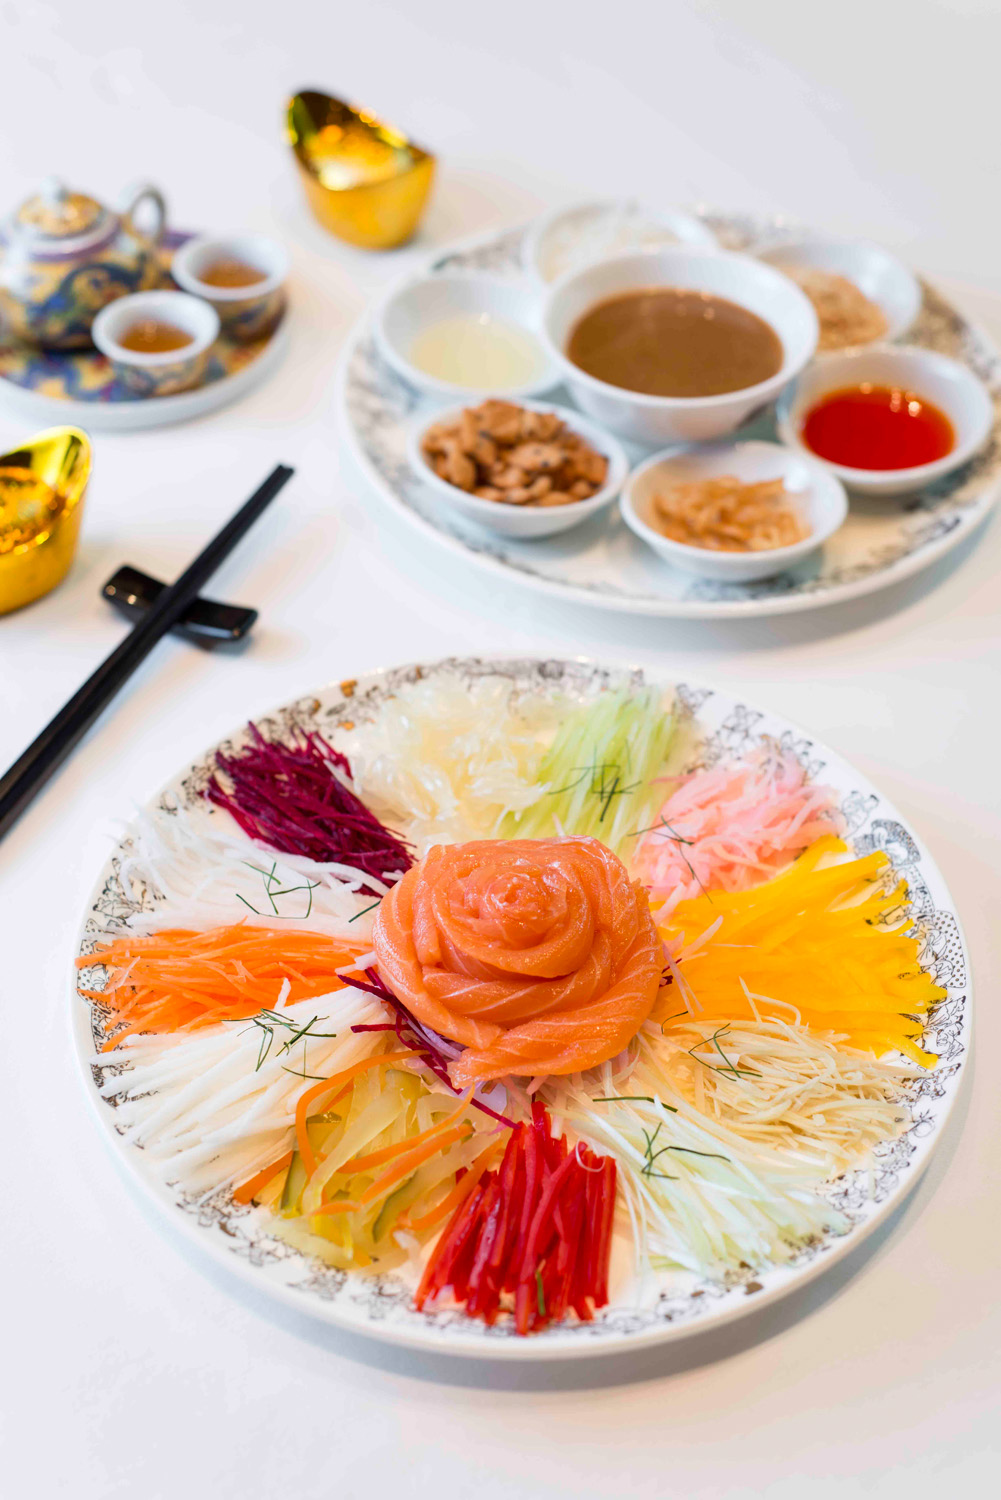 PBK_ChineseNewYear_Yu Shang Salmon Sashimi with Shredded Mixed Vegetables(1)